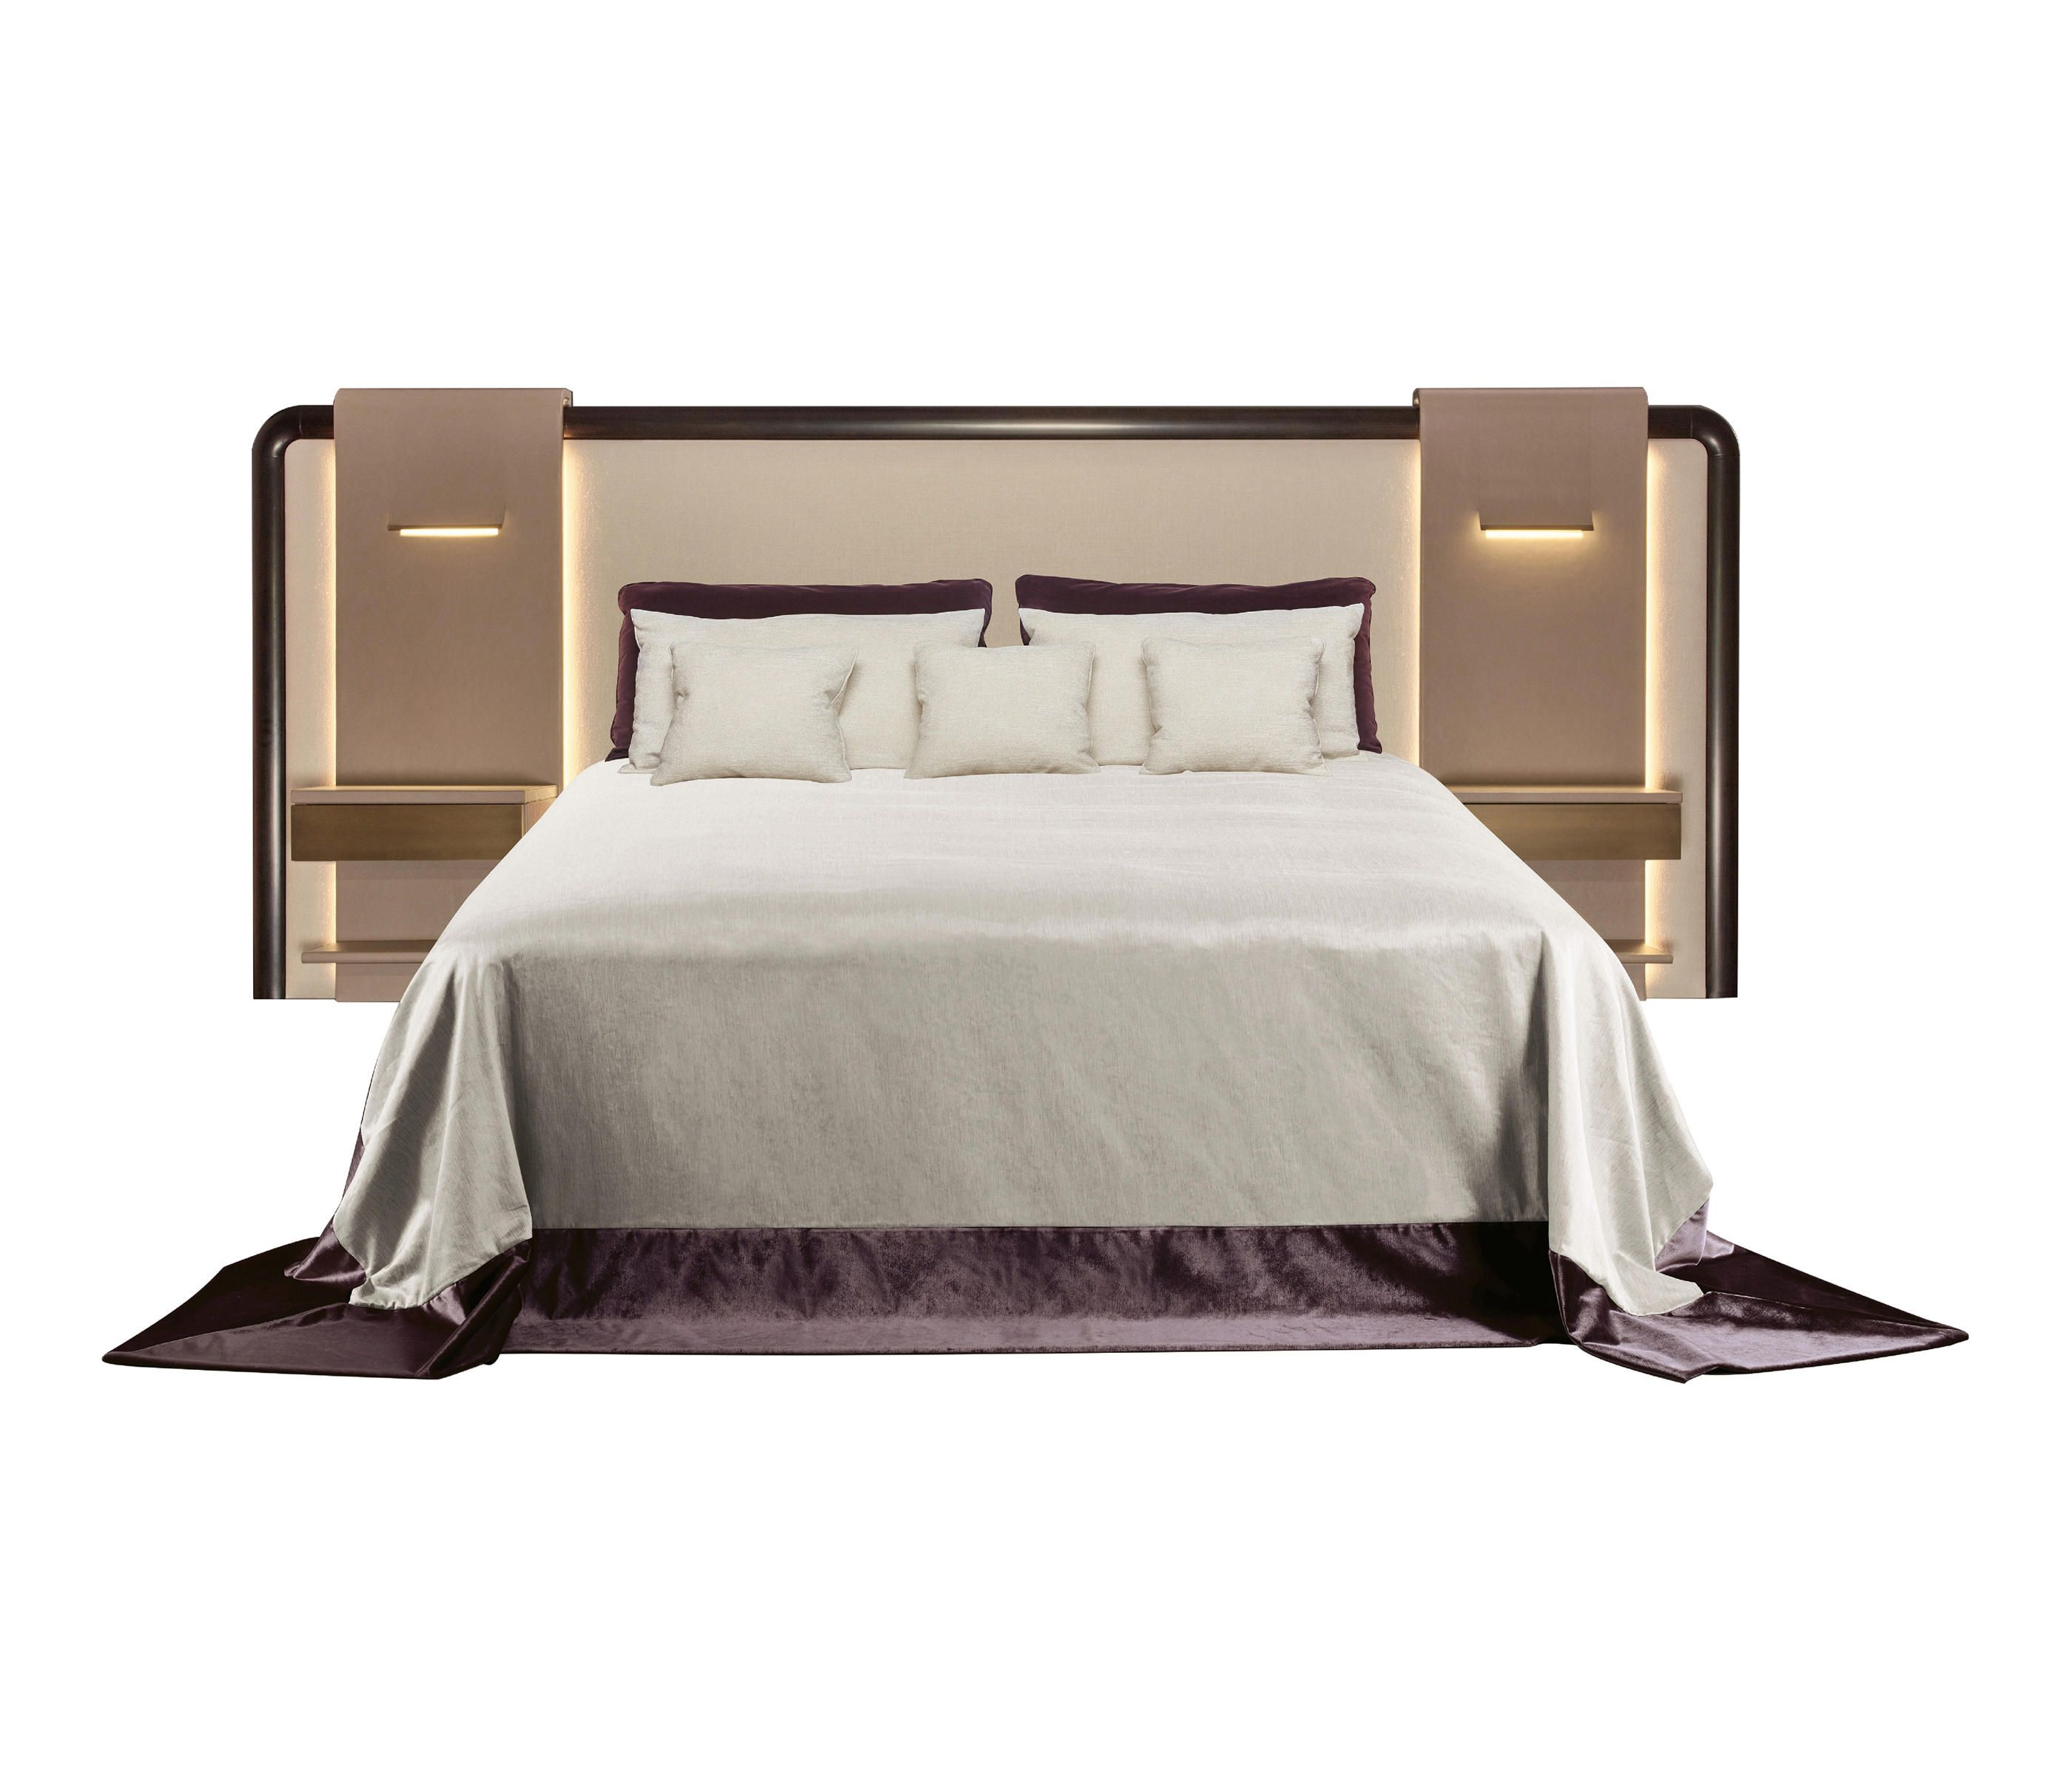 Cover Headboard With Fabric Headboard Covering In Fabric With Profile In Beech Or Bruno